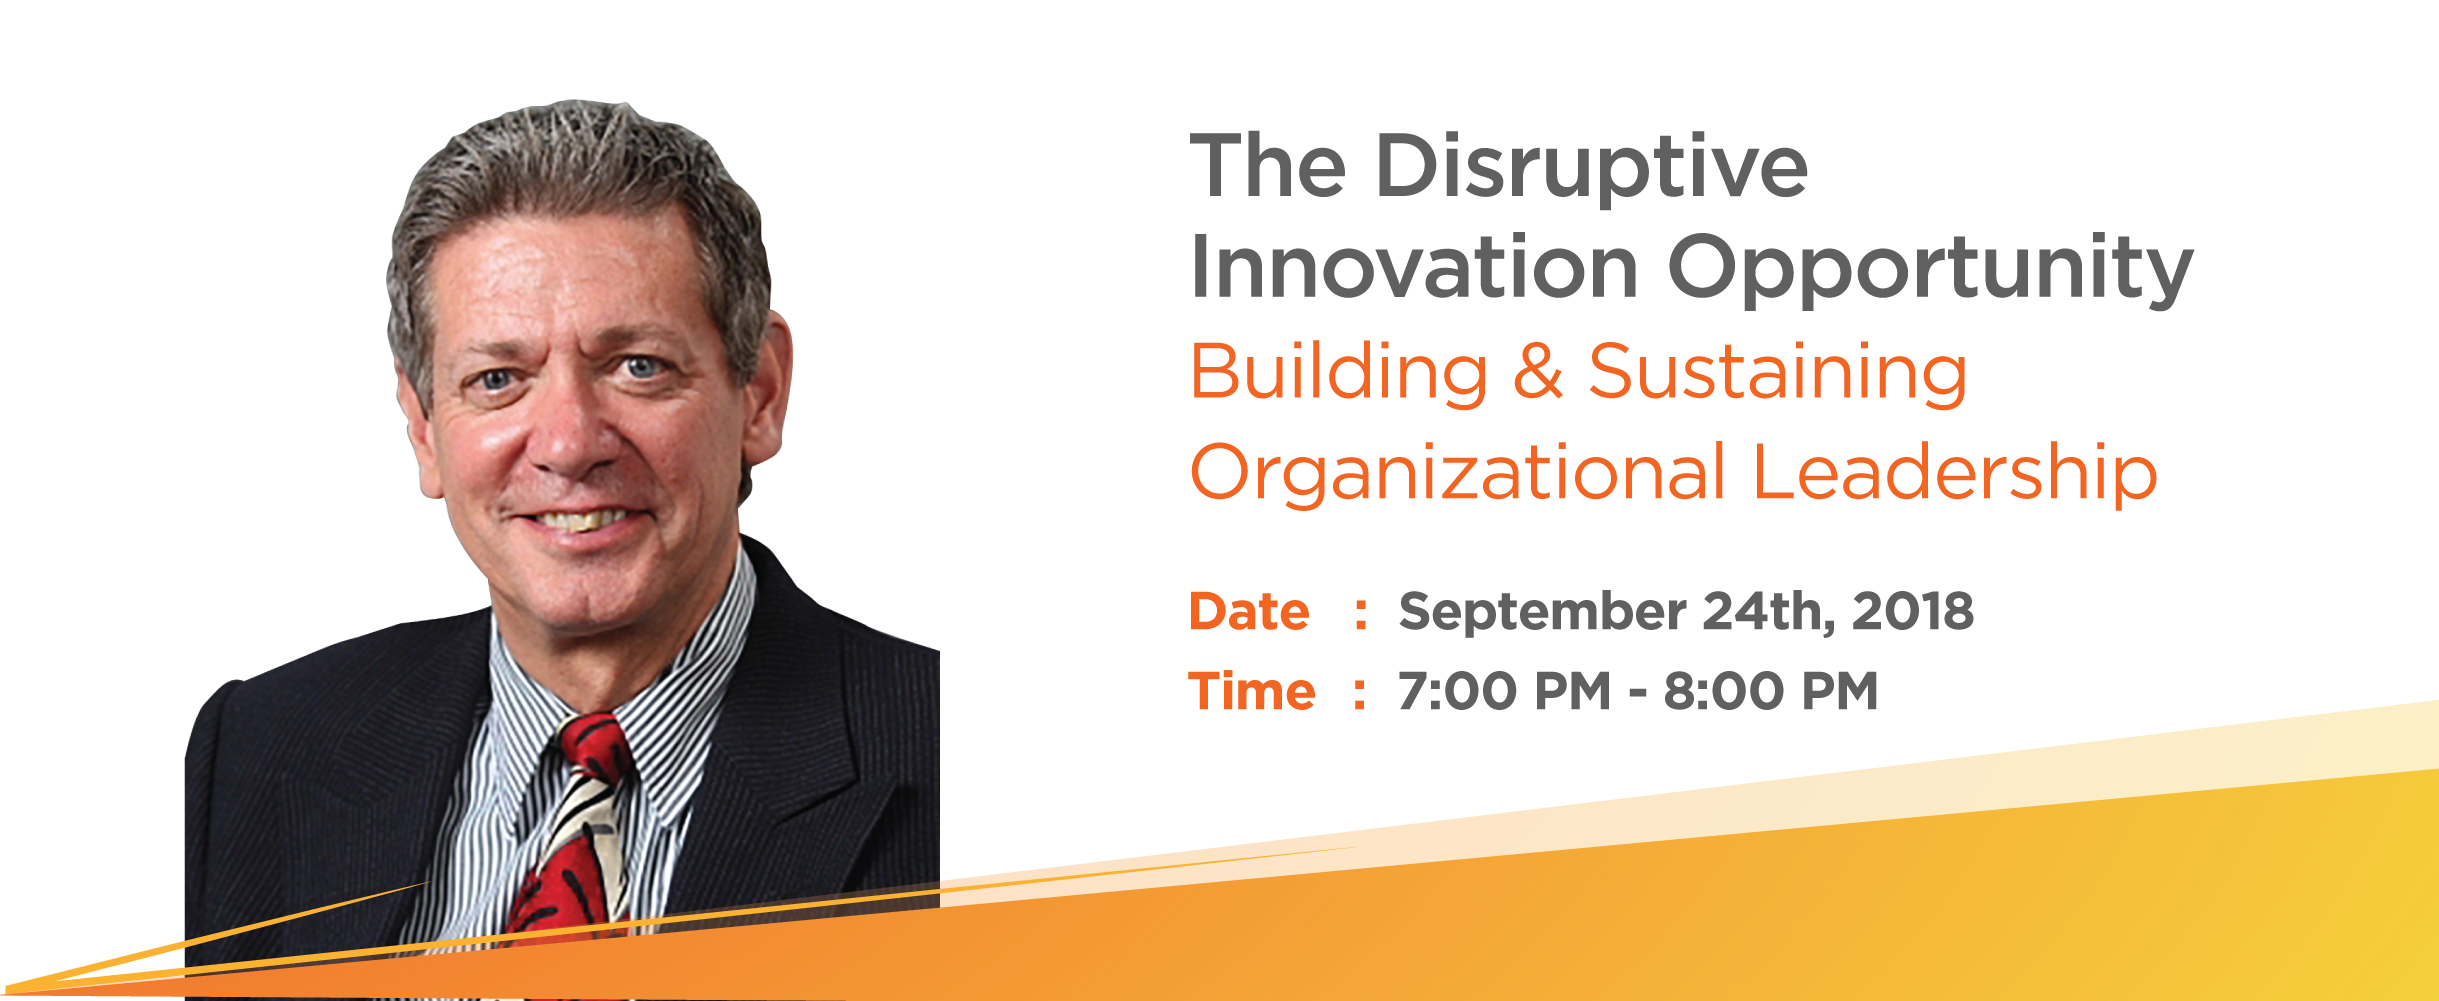 The Disruptive Innovation Opportunity